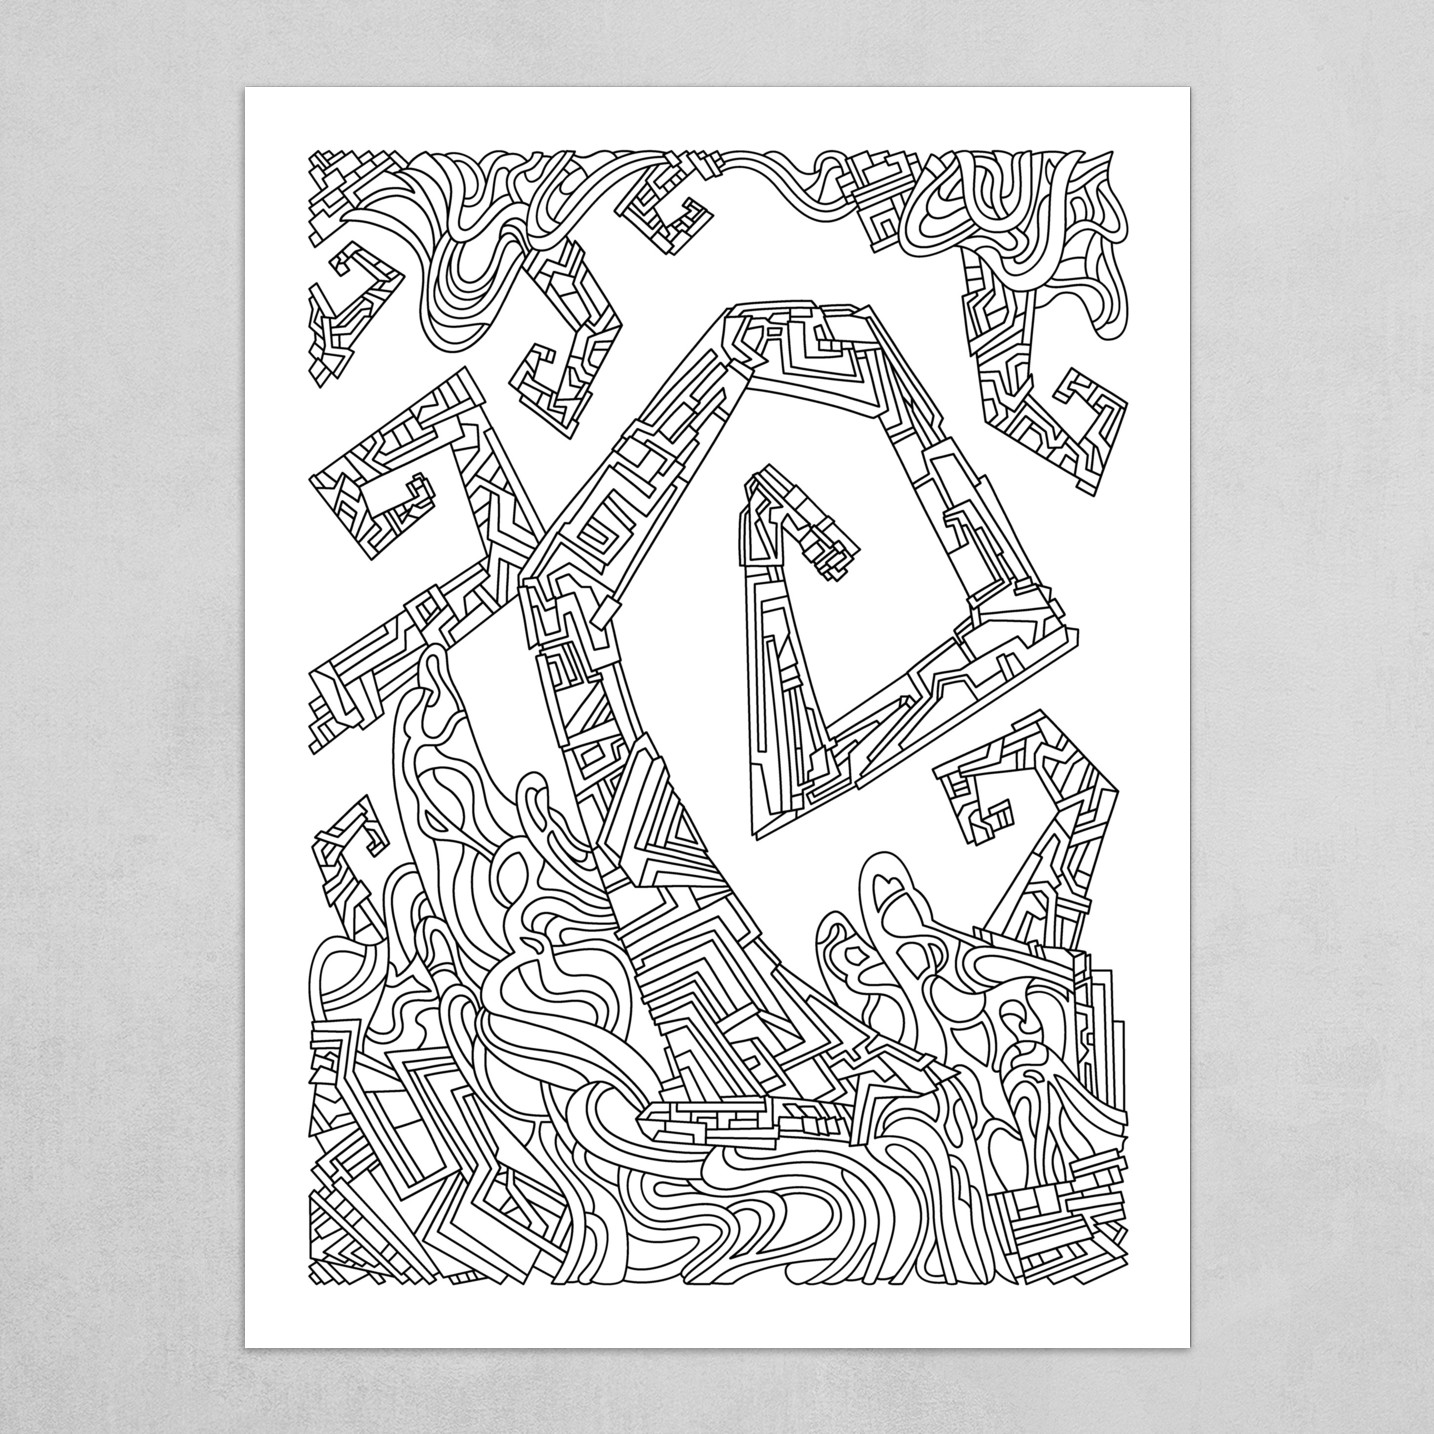 Wandering Abstract Line Art 08: Black & White